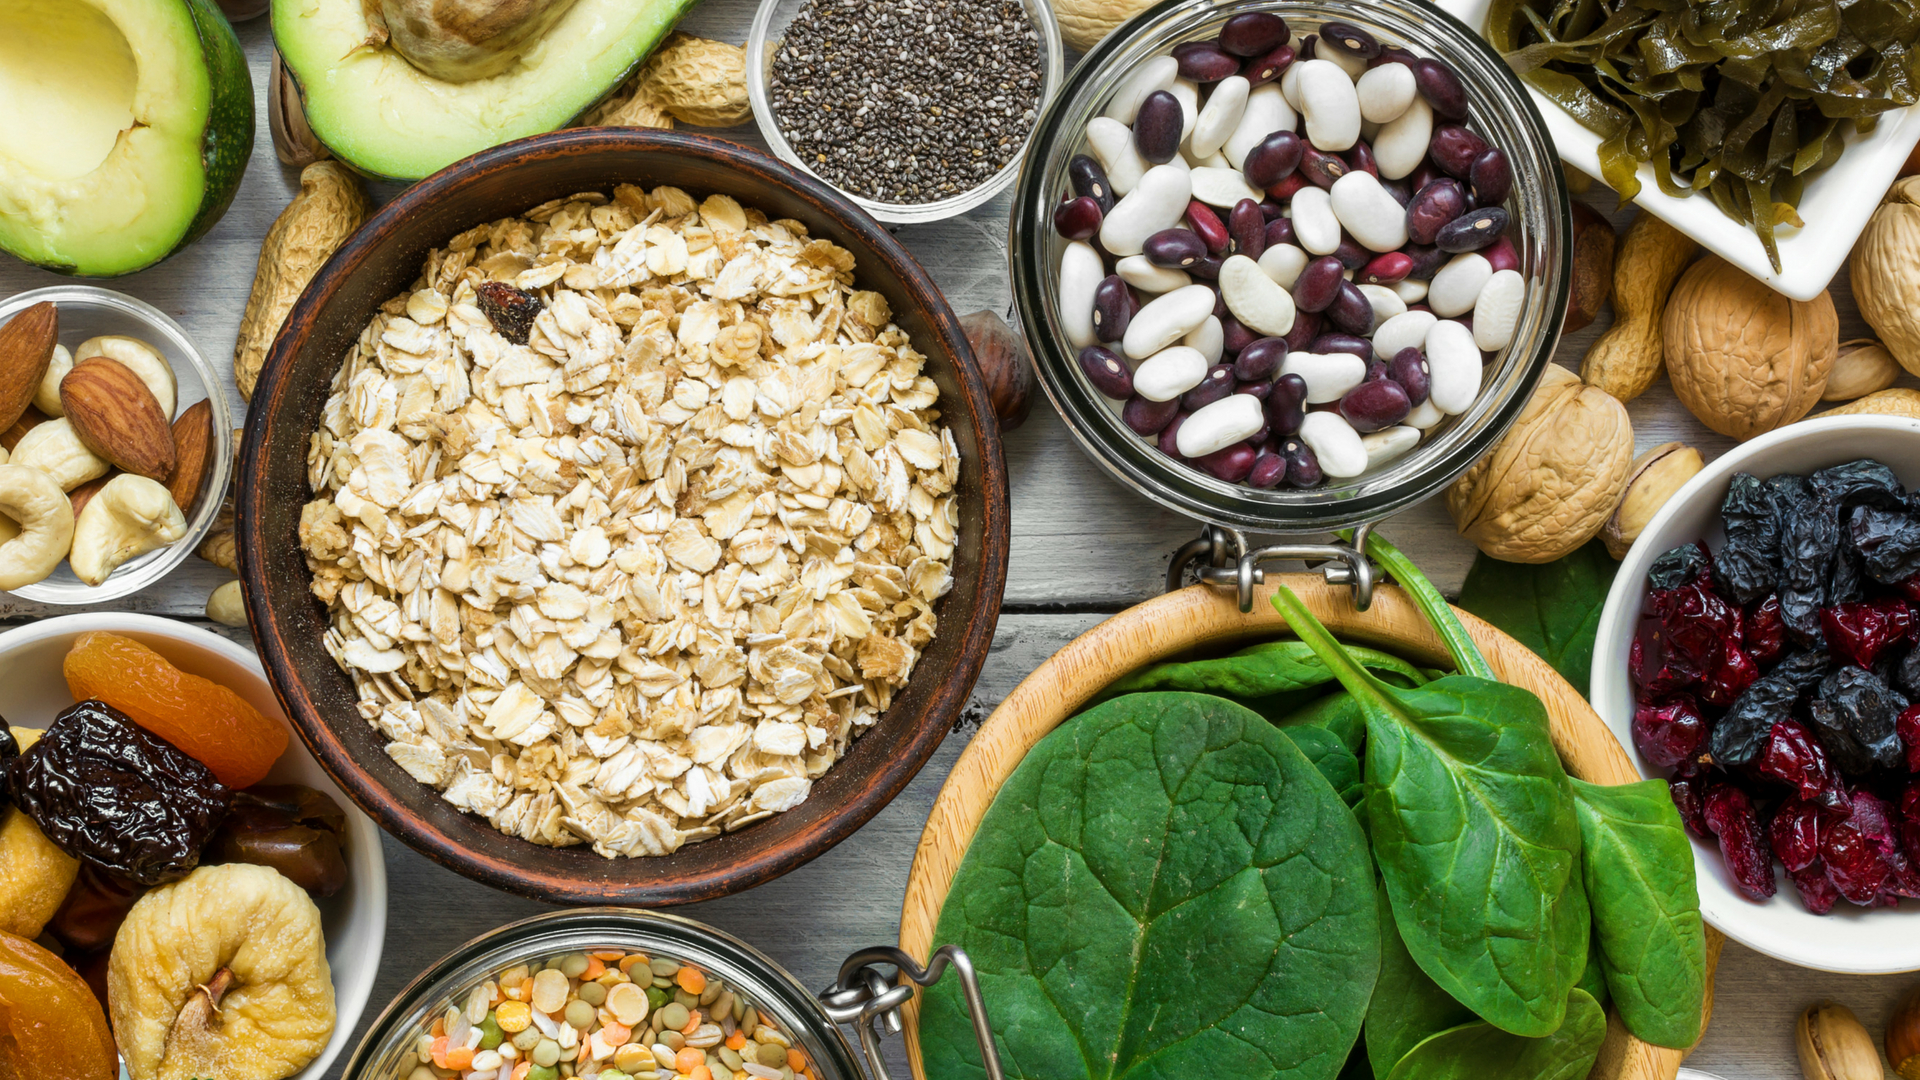 Magnesium Benefits: How much magnesium should you be getting?